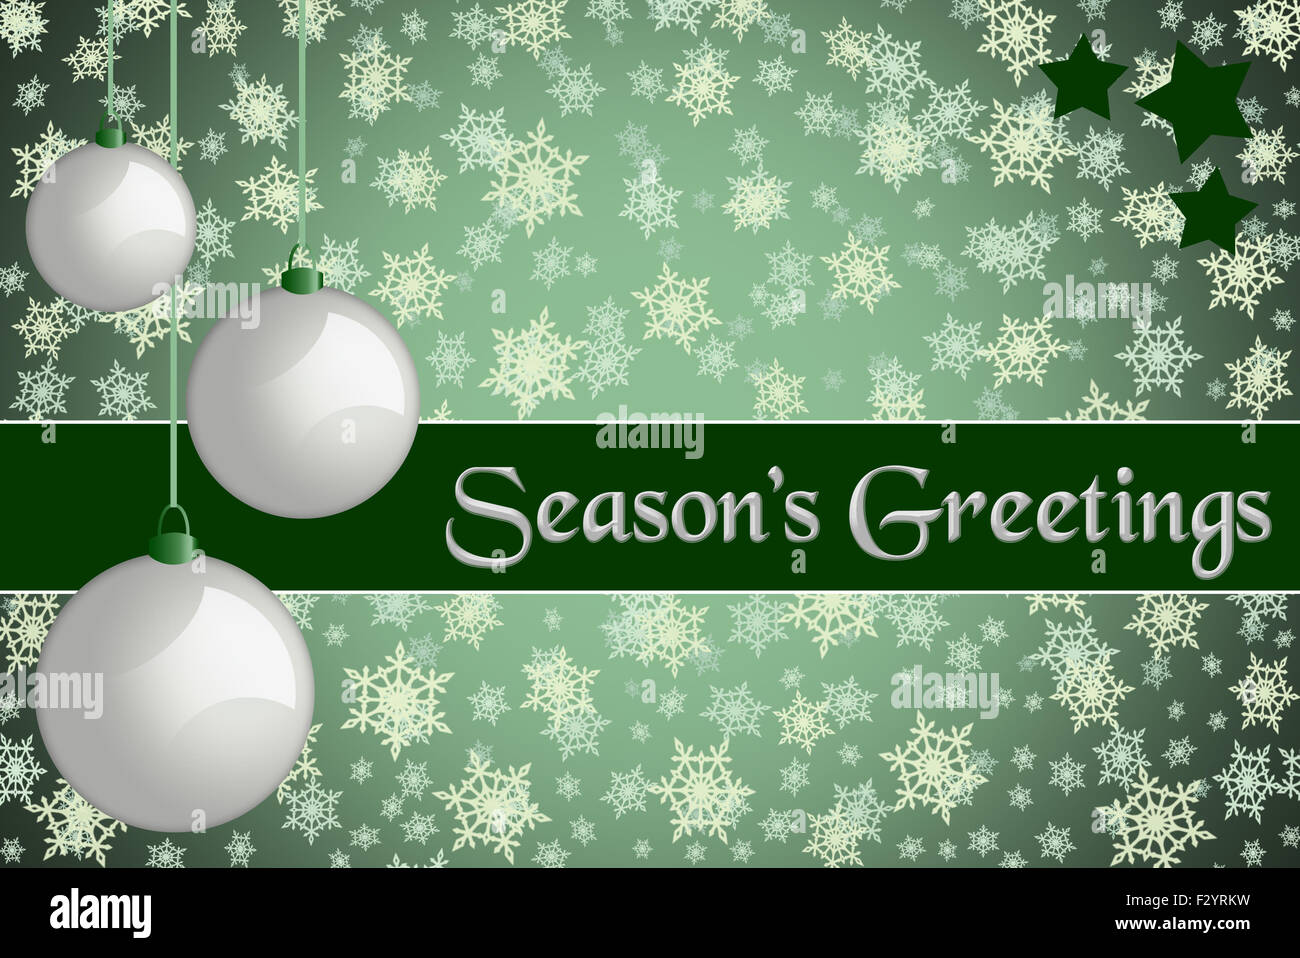 Seasons greetings banner stock photos seasons greetings banner christmas greeting card seasons greetings green colored christmas card with retro white baubles kristyandbryce Image collections